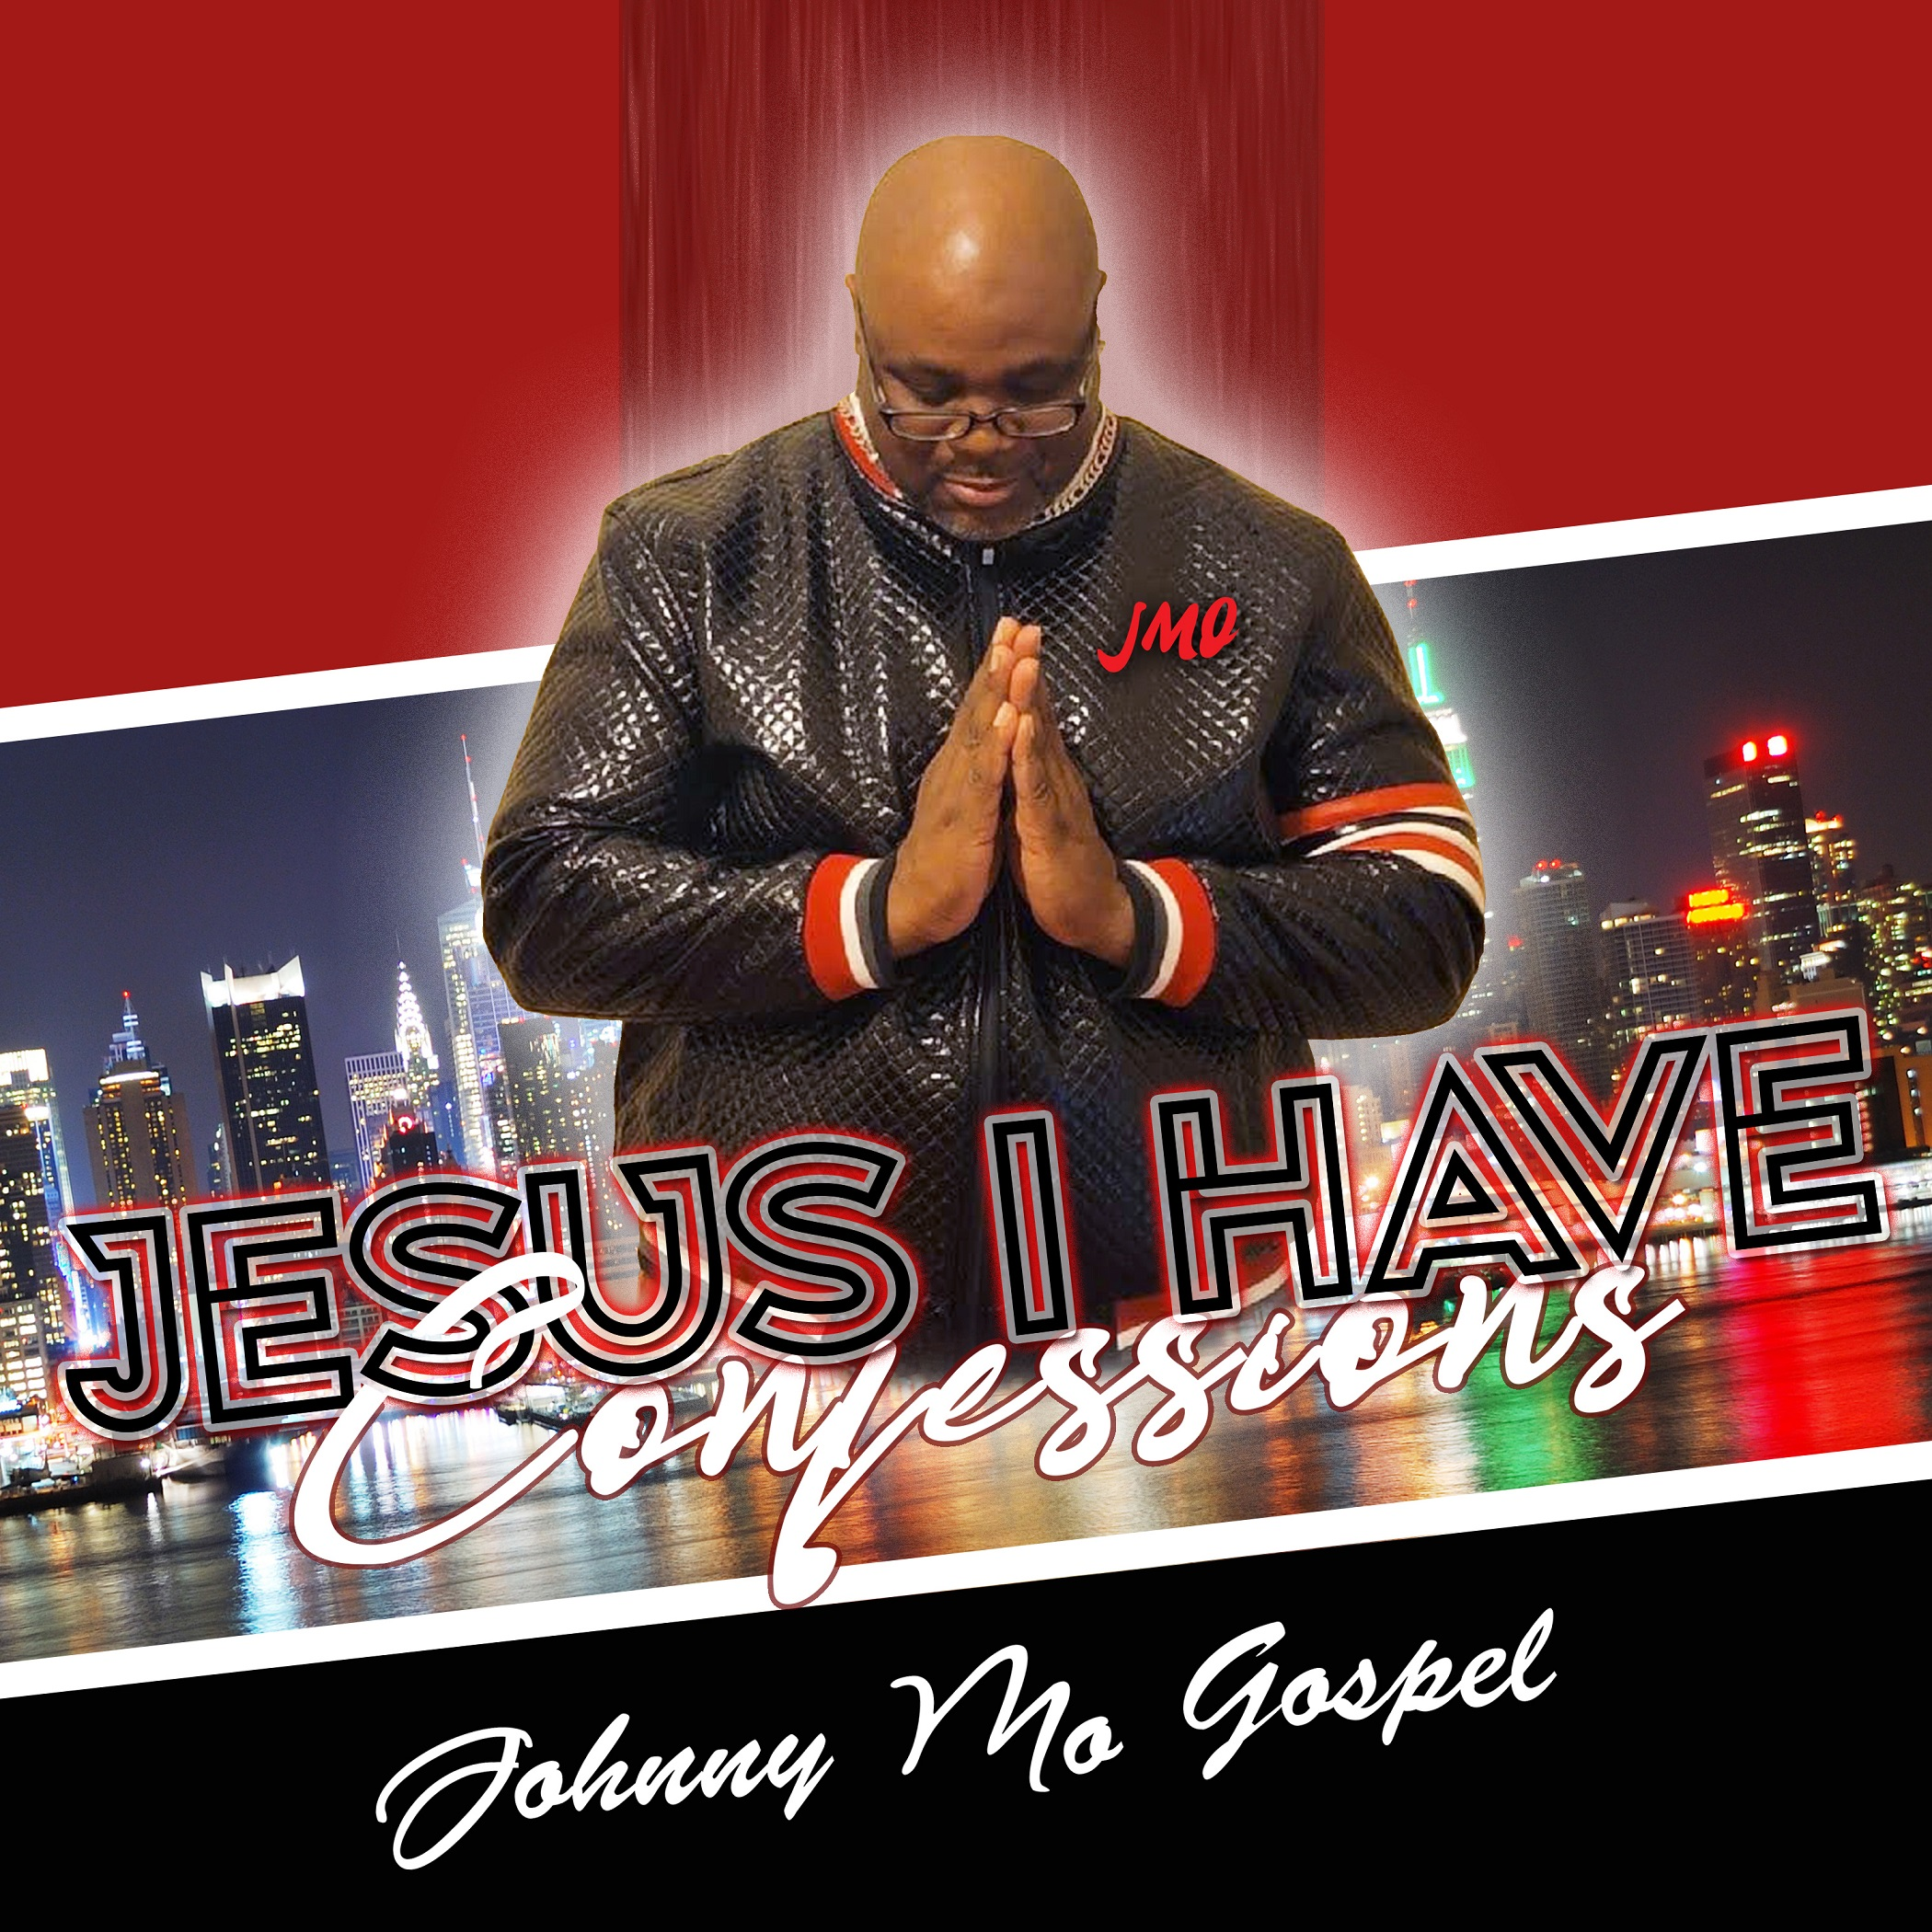 """Asking For Forgiveness And Redemption On The Path To Improving His Relationship With God: Johnny Mo Gospel Releases New 14 Song Digital Gospel/ Christian CD Project """"Jesus I Have Confessions"""""""